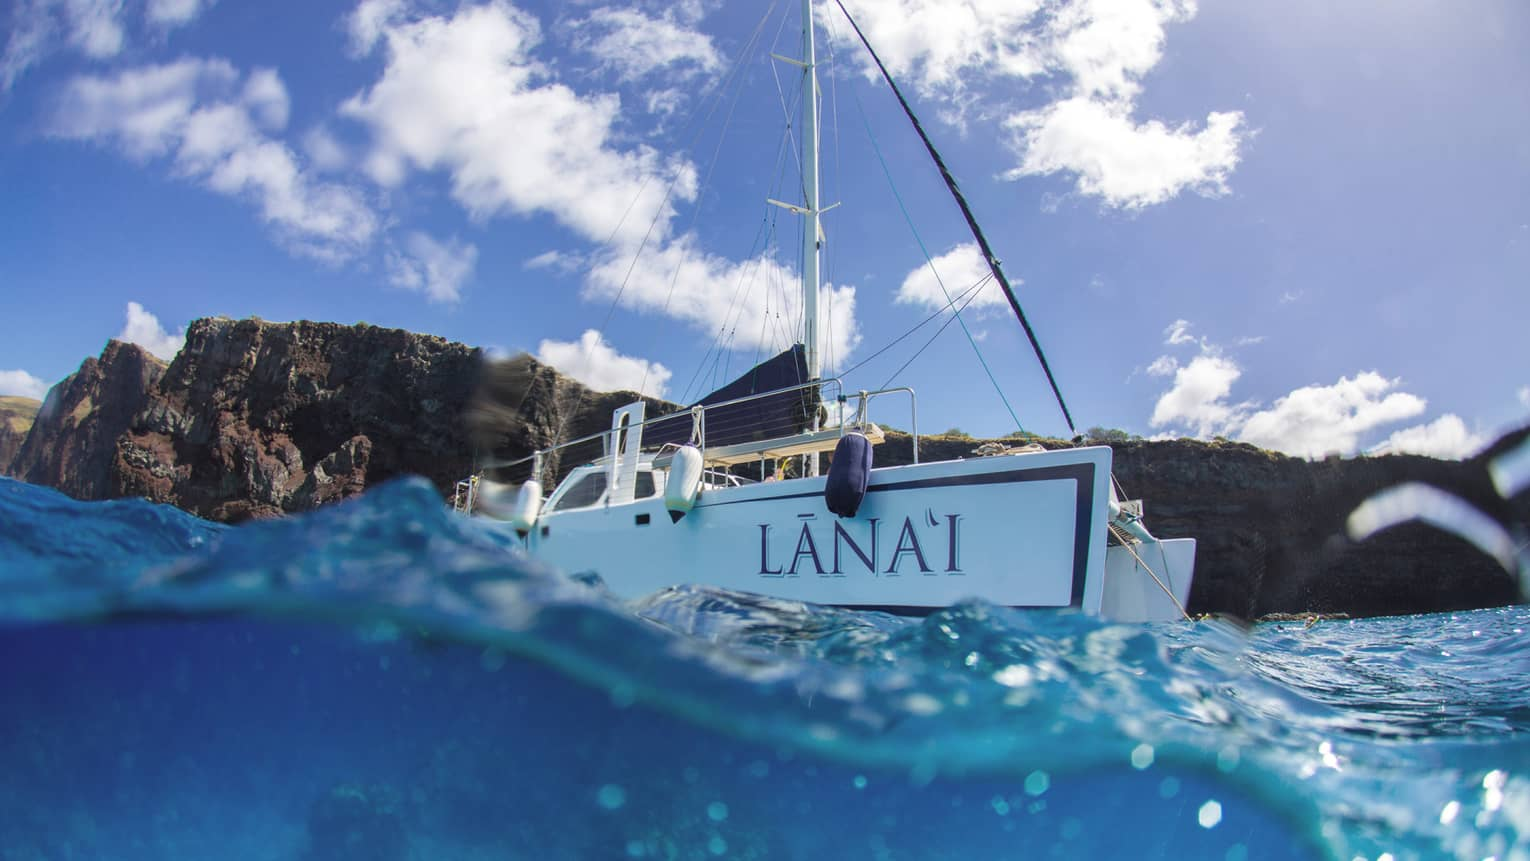 Lanai catamaran on blue waters headed out to sea